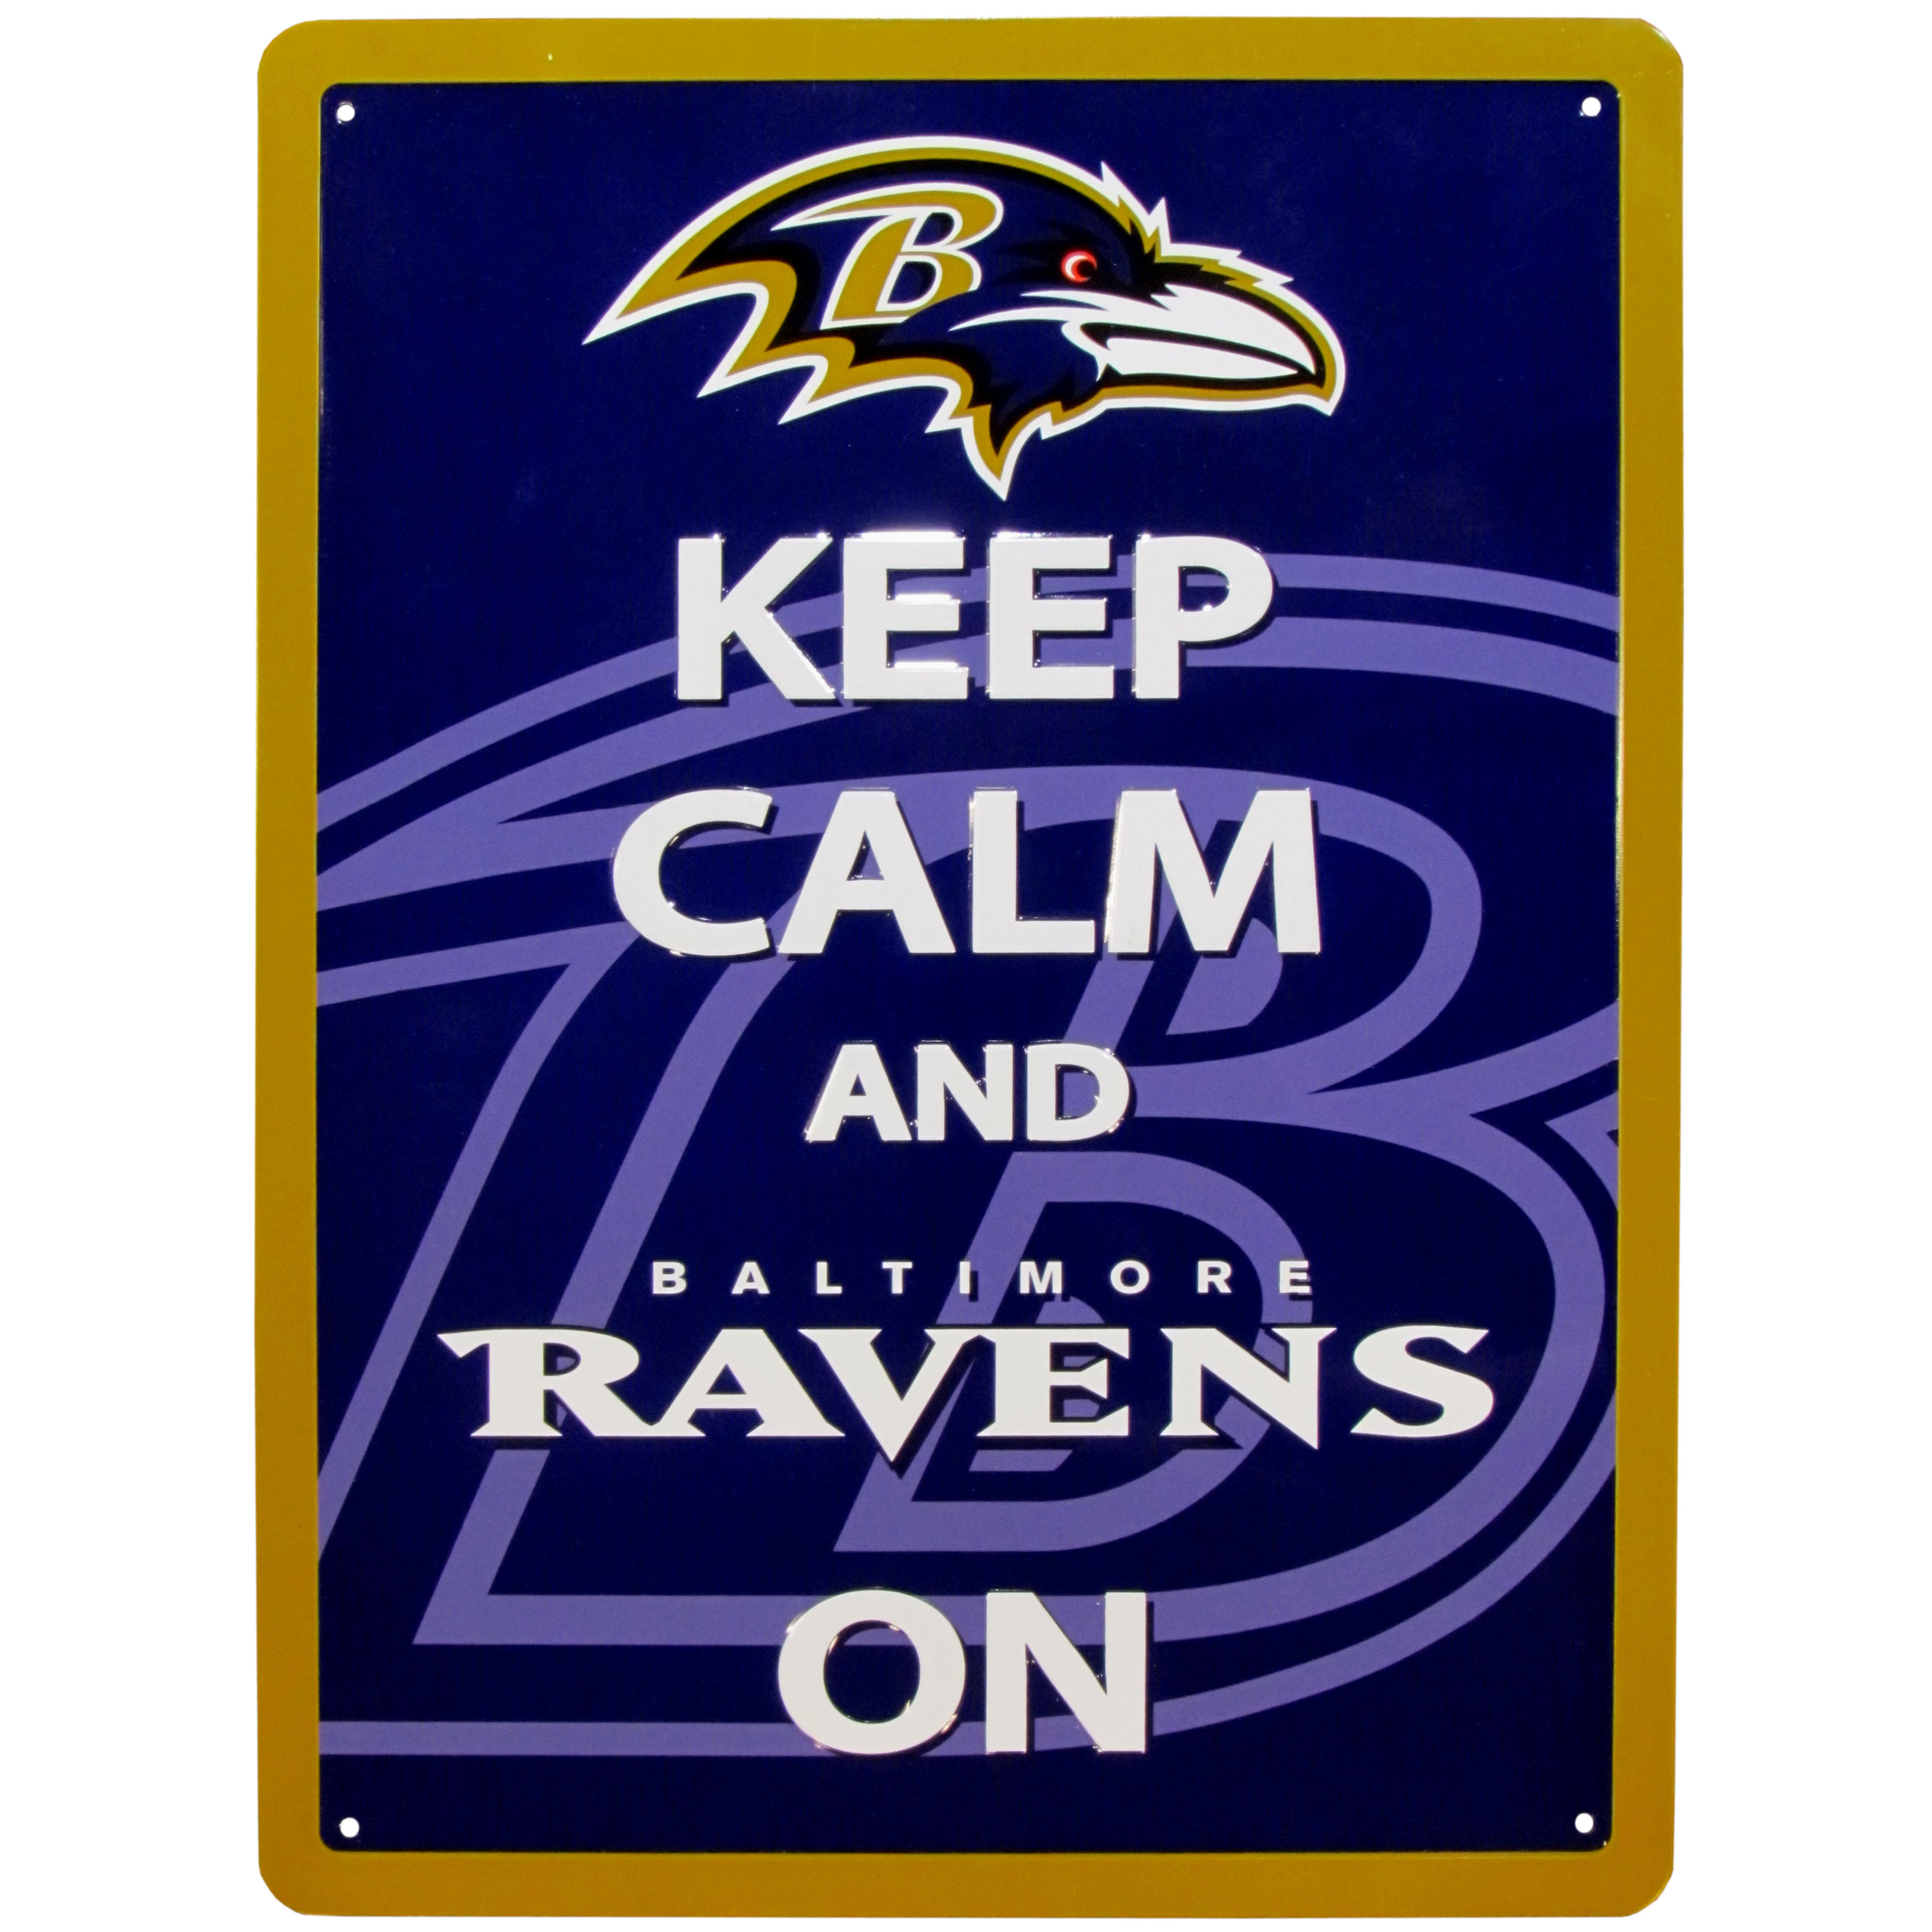 Baltimore Ravens Keep Calm Sign - One of the most enduring motivational signs of all time is now available with your beloved Baltimore Ravens logo. The 9 inch by 12 inch sign is a must have for any fan cave!